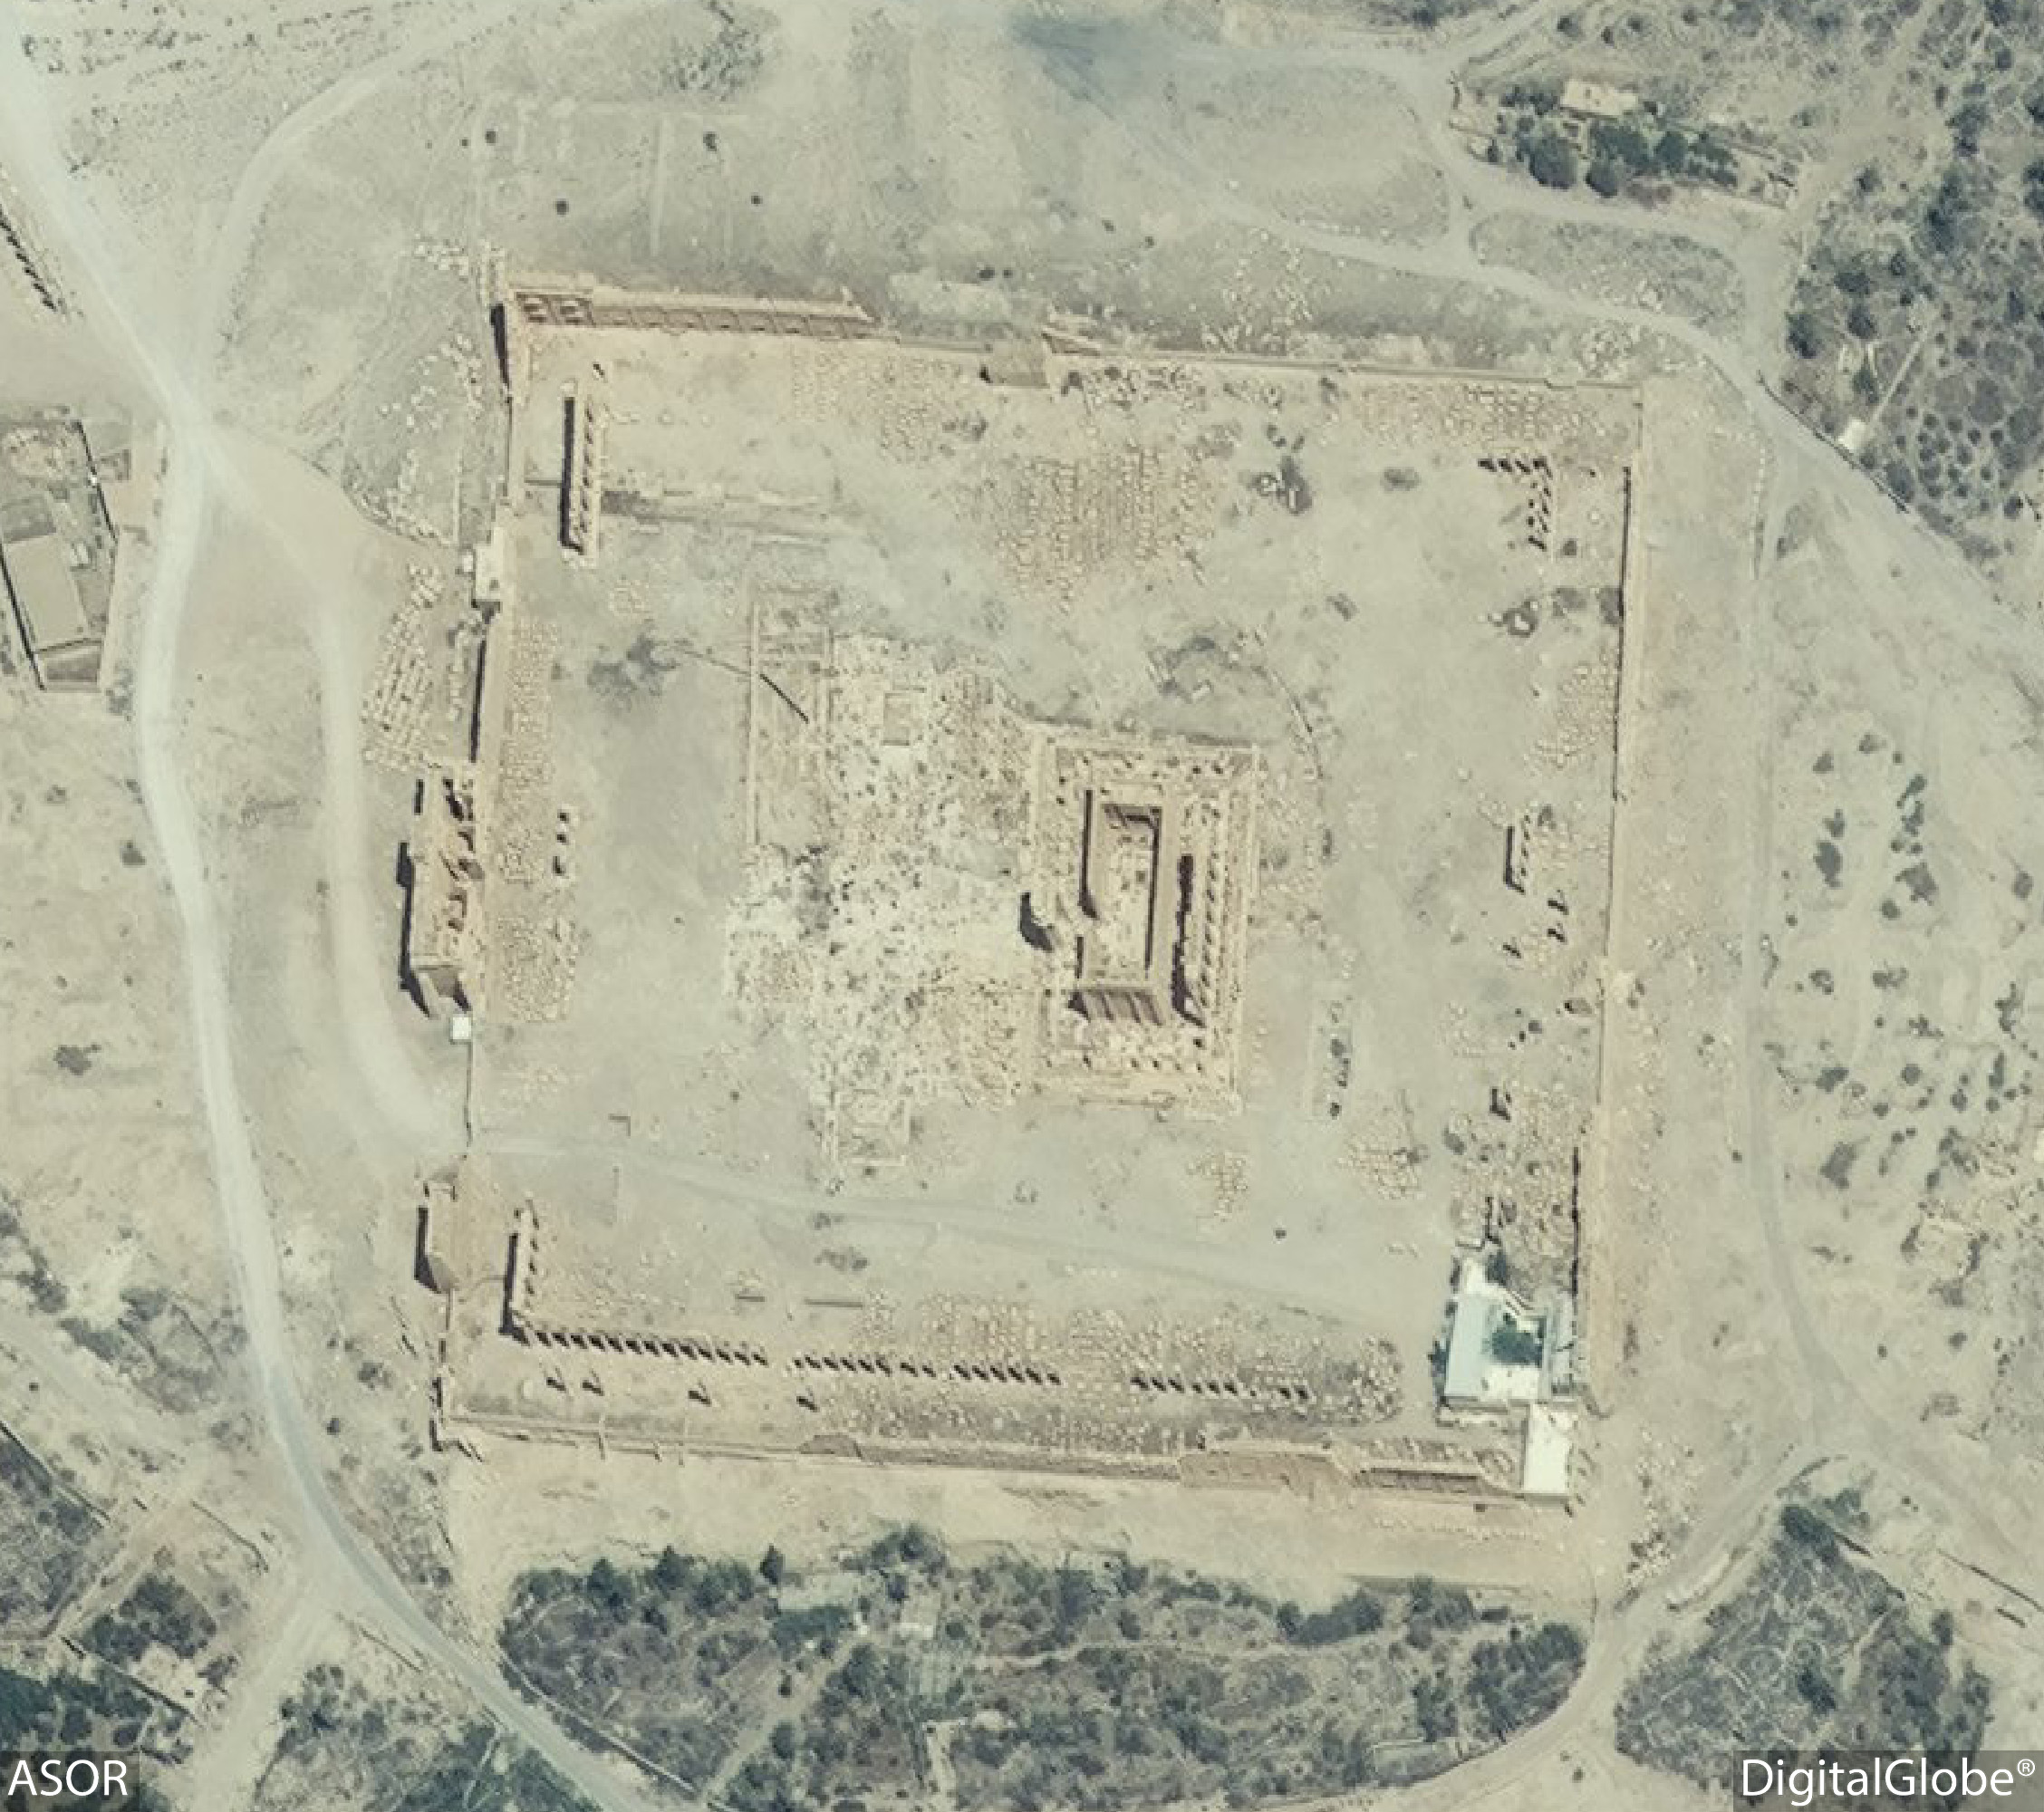 Figure 31. Satellite imagery of the Temple of Bel. No visible damage (DigitalGlobe; June 26, 2015).